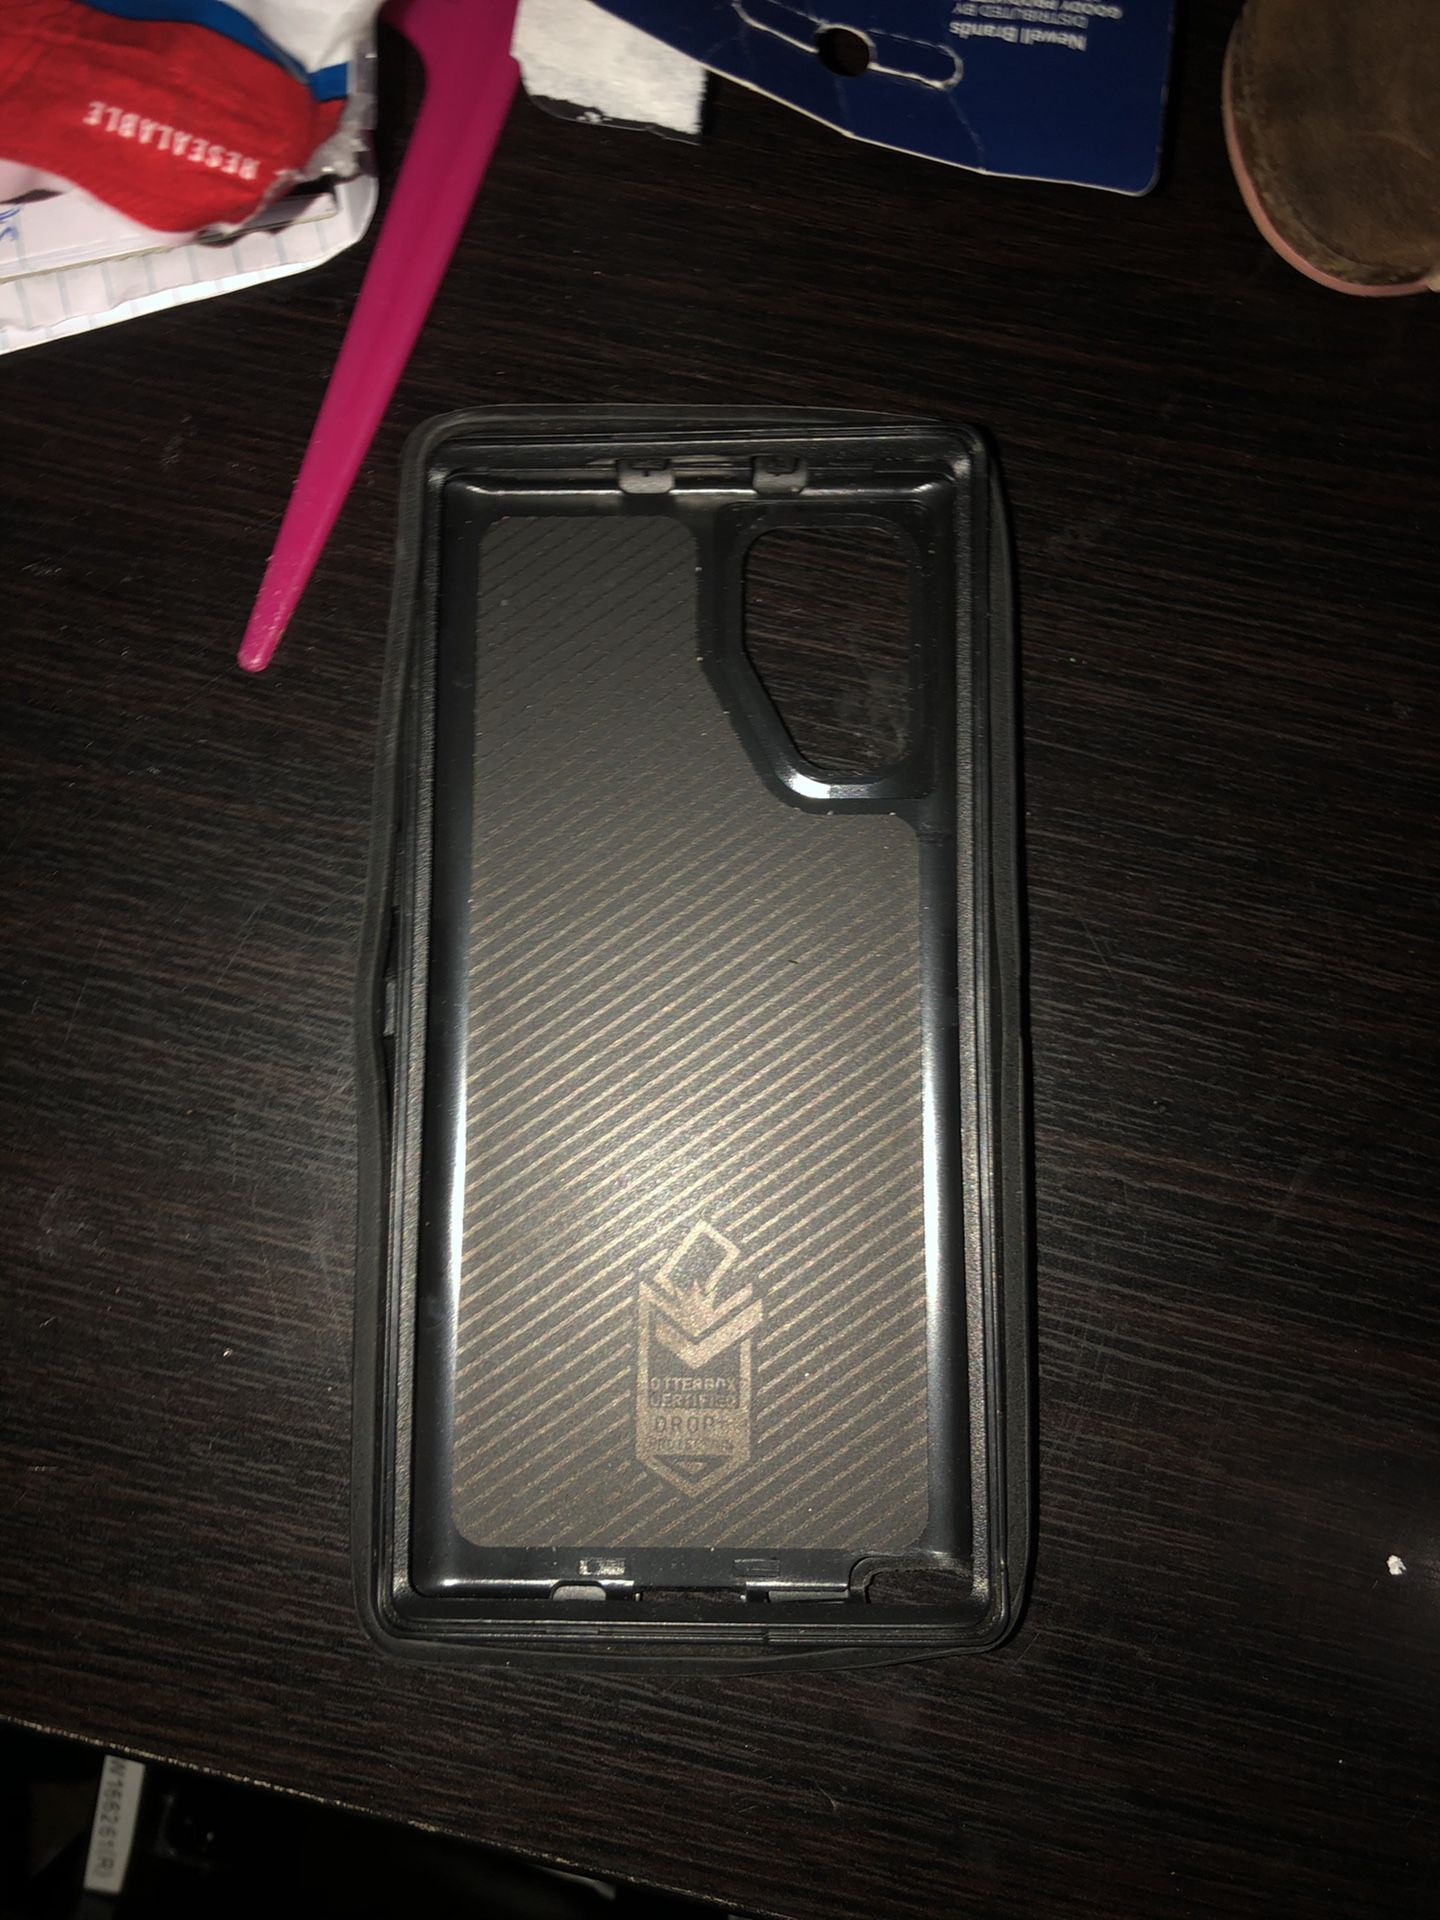 Note 10 with otter box case